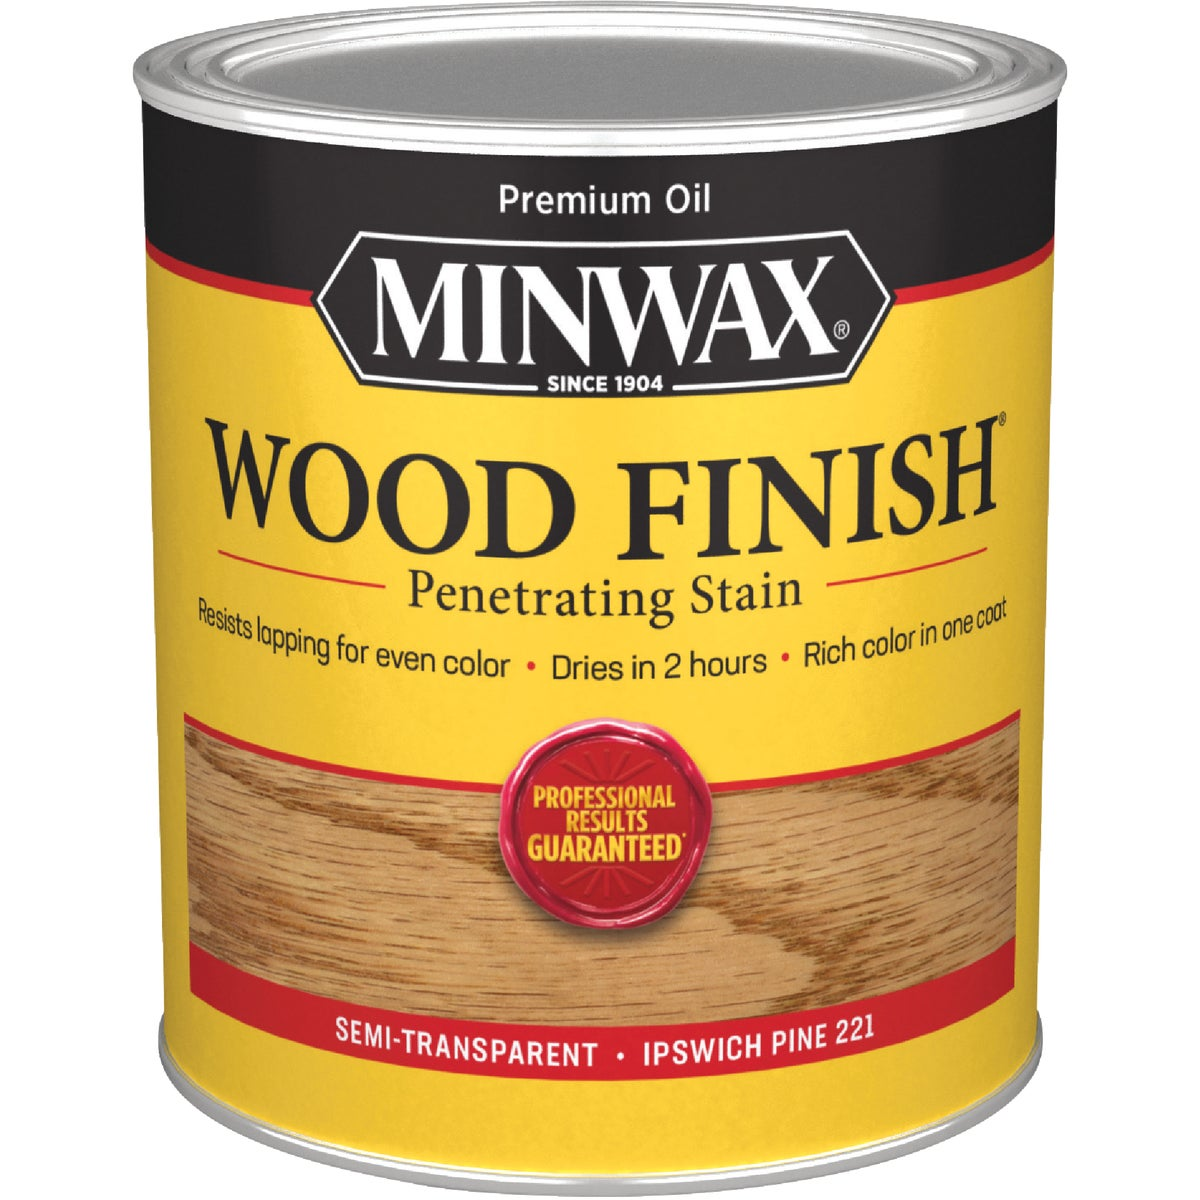 IPSWICH PINE WOOD STAIN - 70004 by Minwax Company